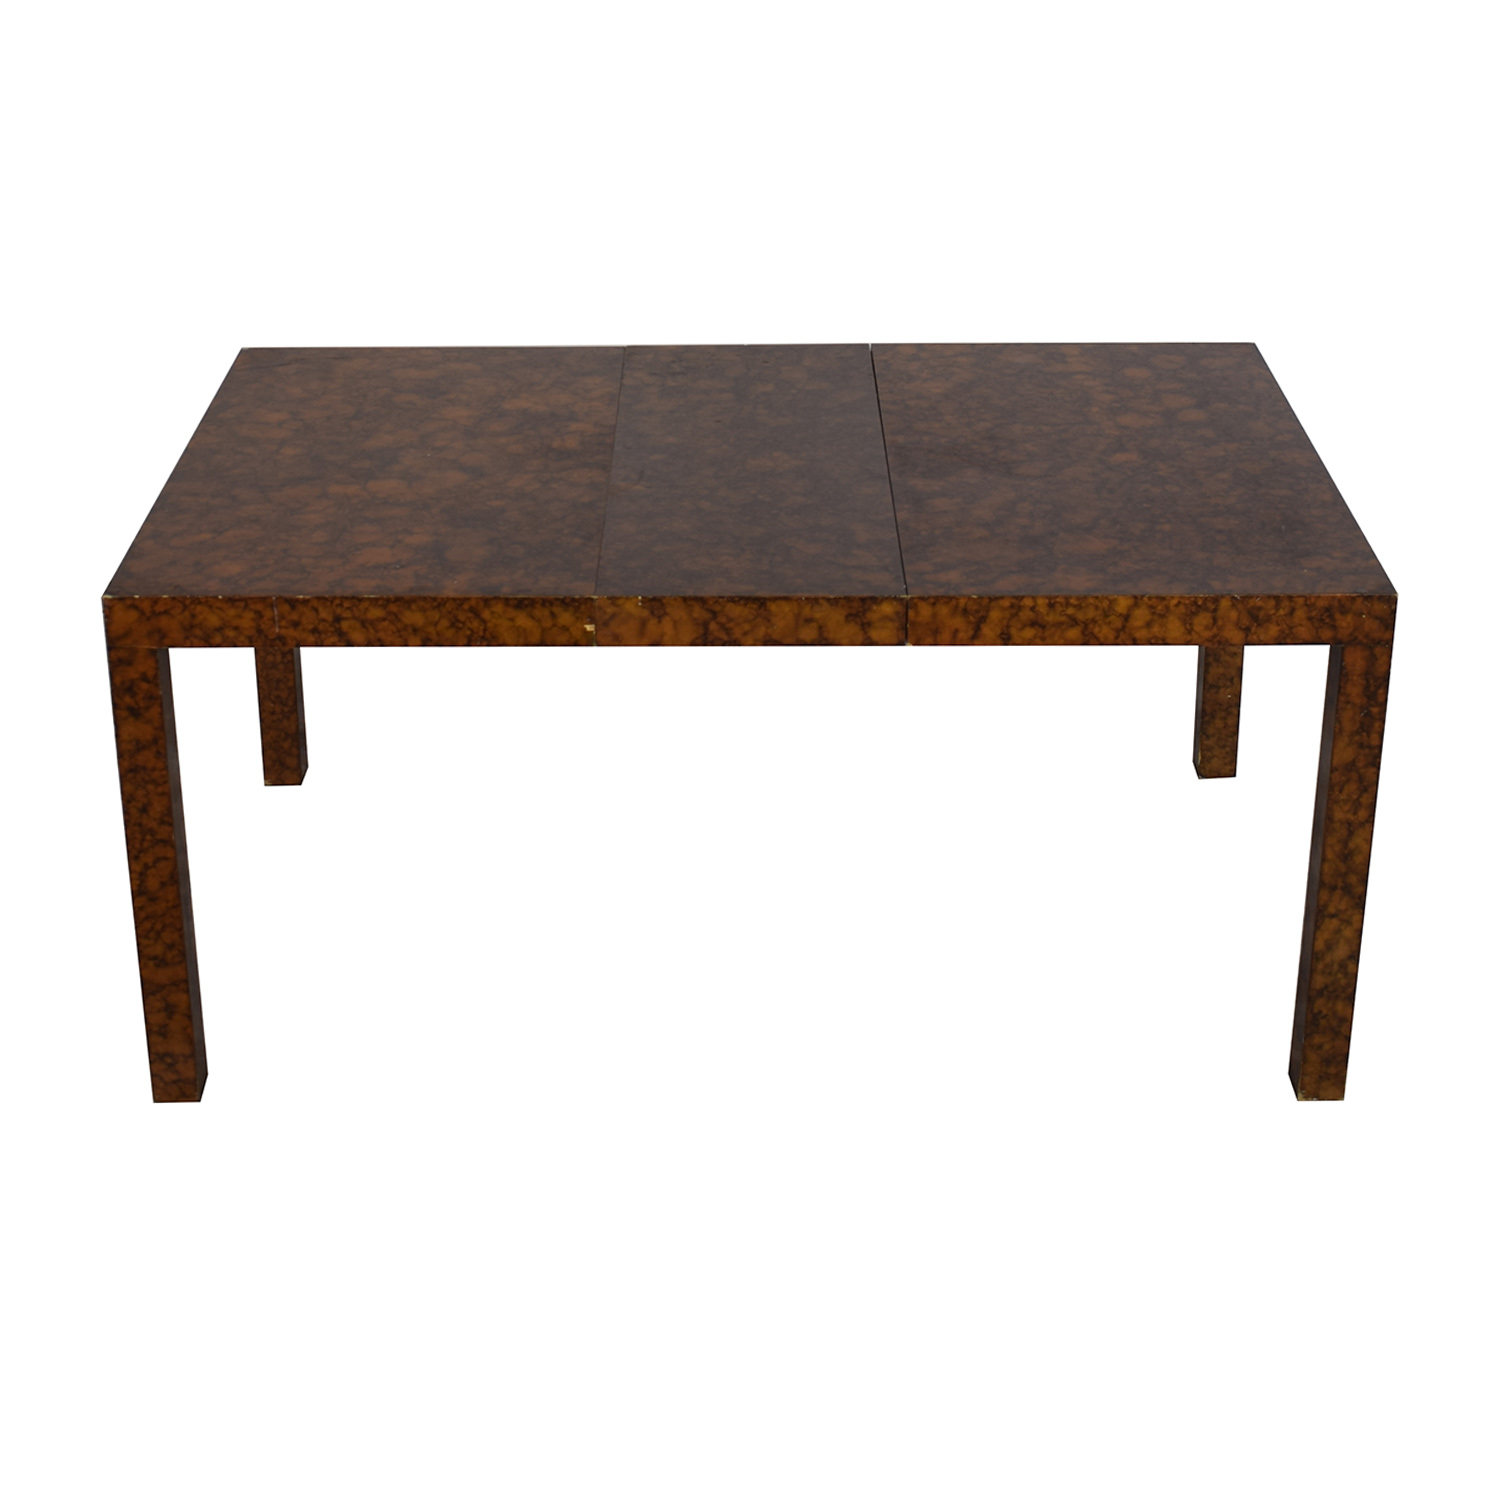 Directional Furniture Directional Furniture Milo Baughman Burl Parsons Dining Table price